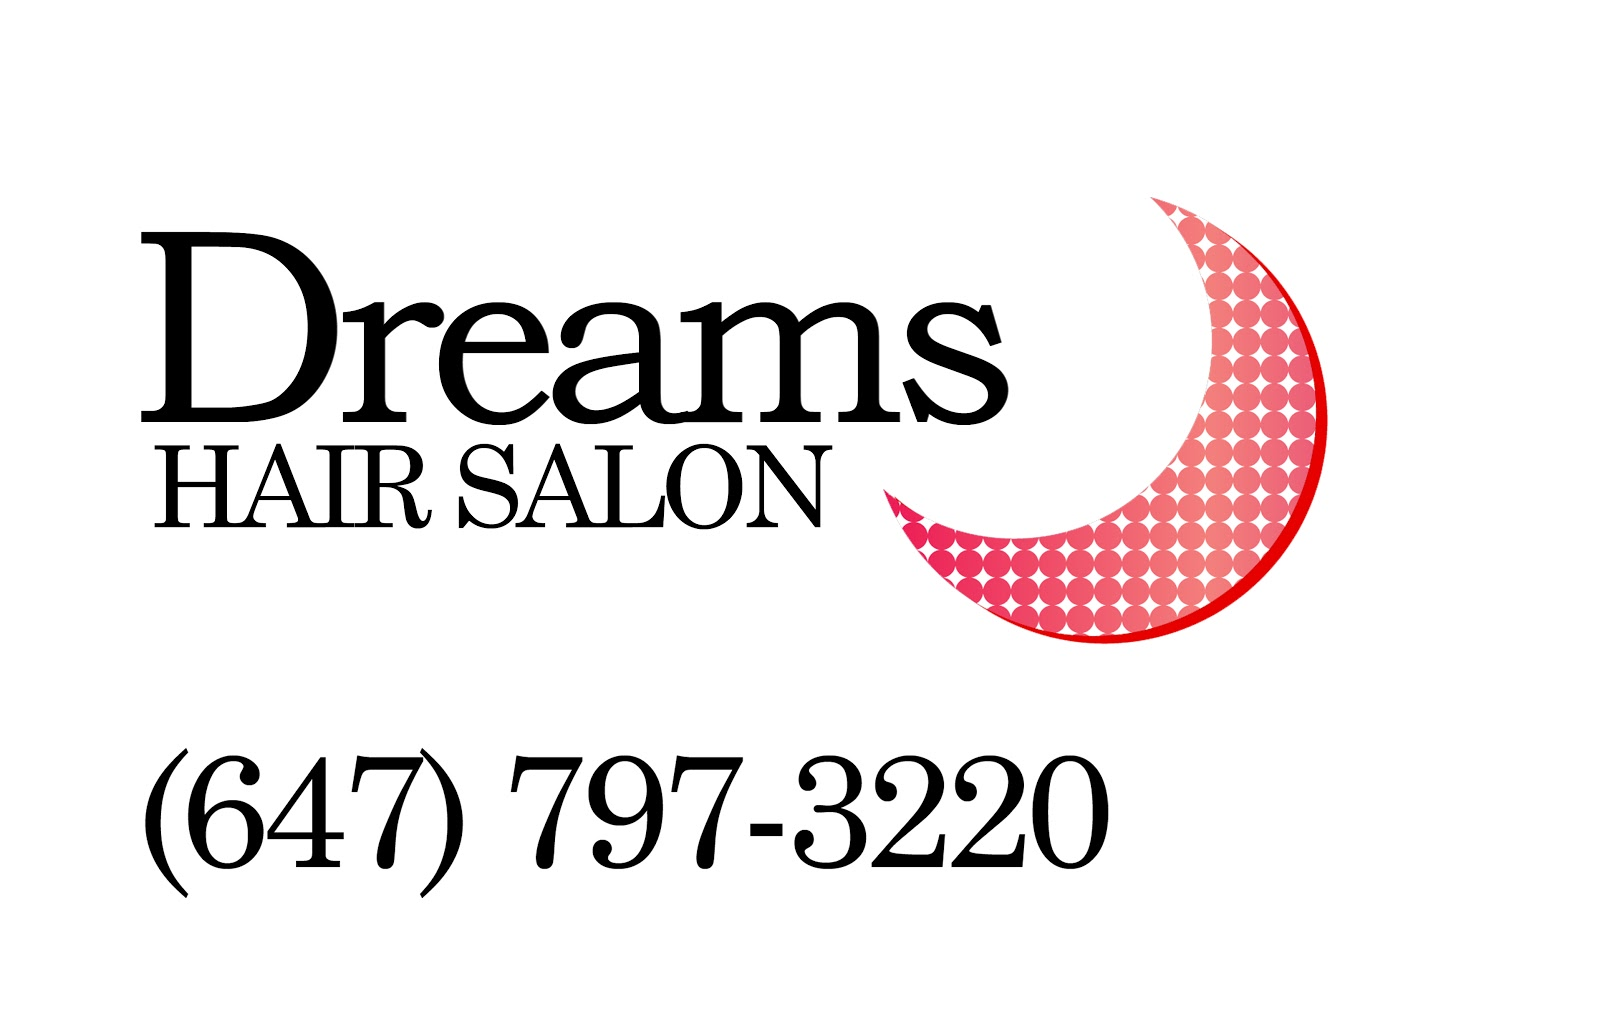 Hair Salon Logos and Clip Art, Hair Salon Logo Ideas Dreams hair.